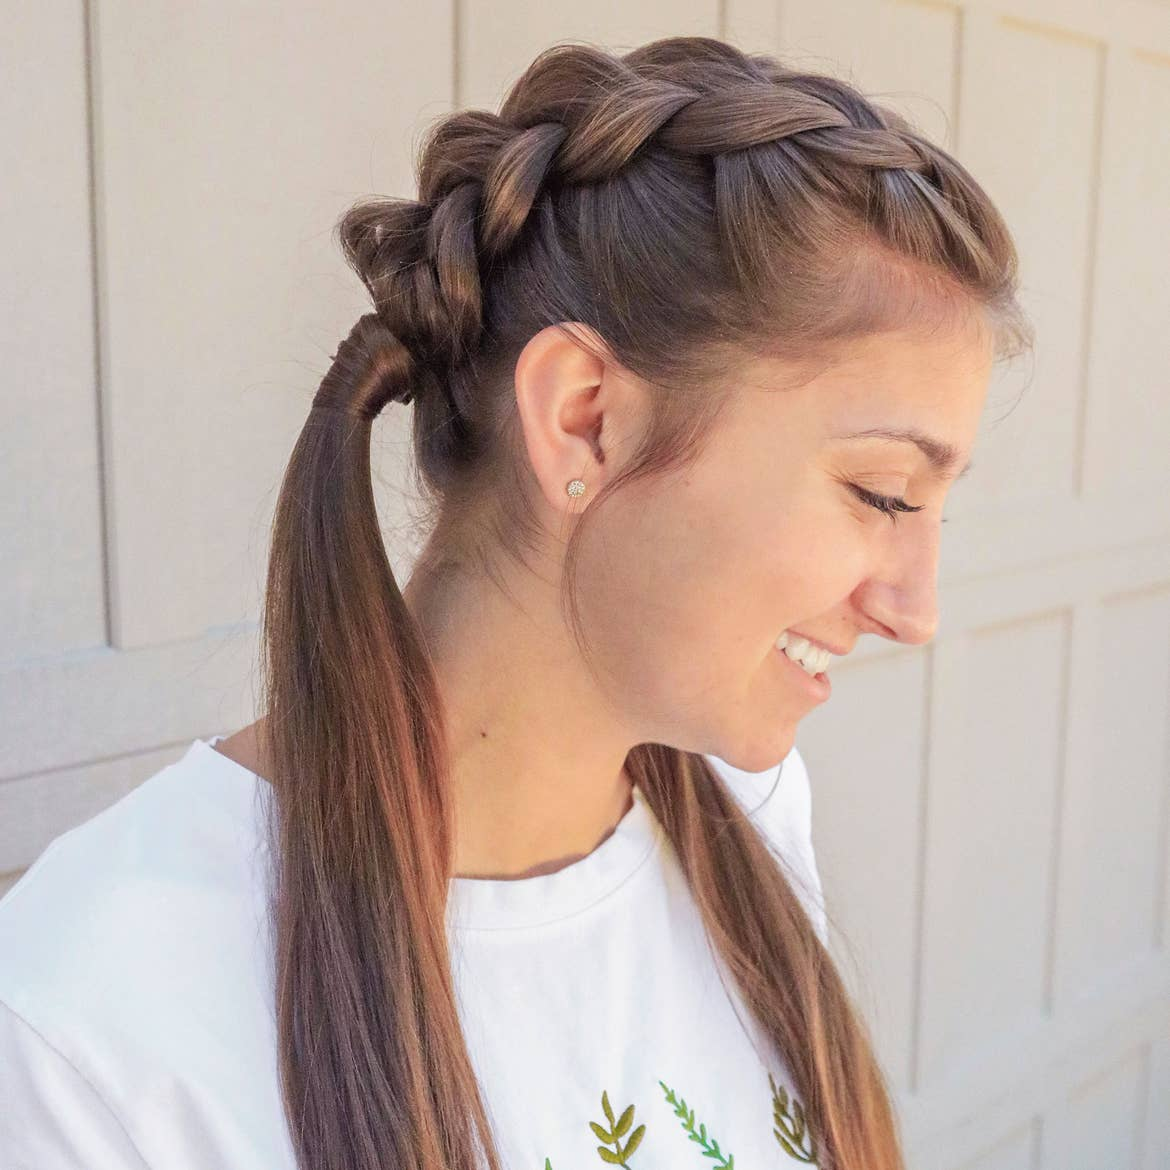 Mindy's daughter, Kamri, sporting the dutch-braid hairstyle from a profile.